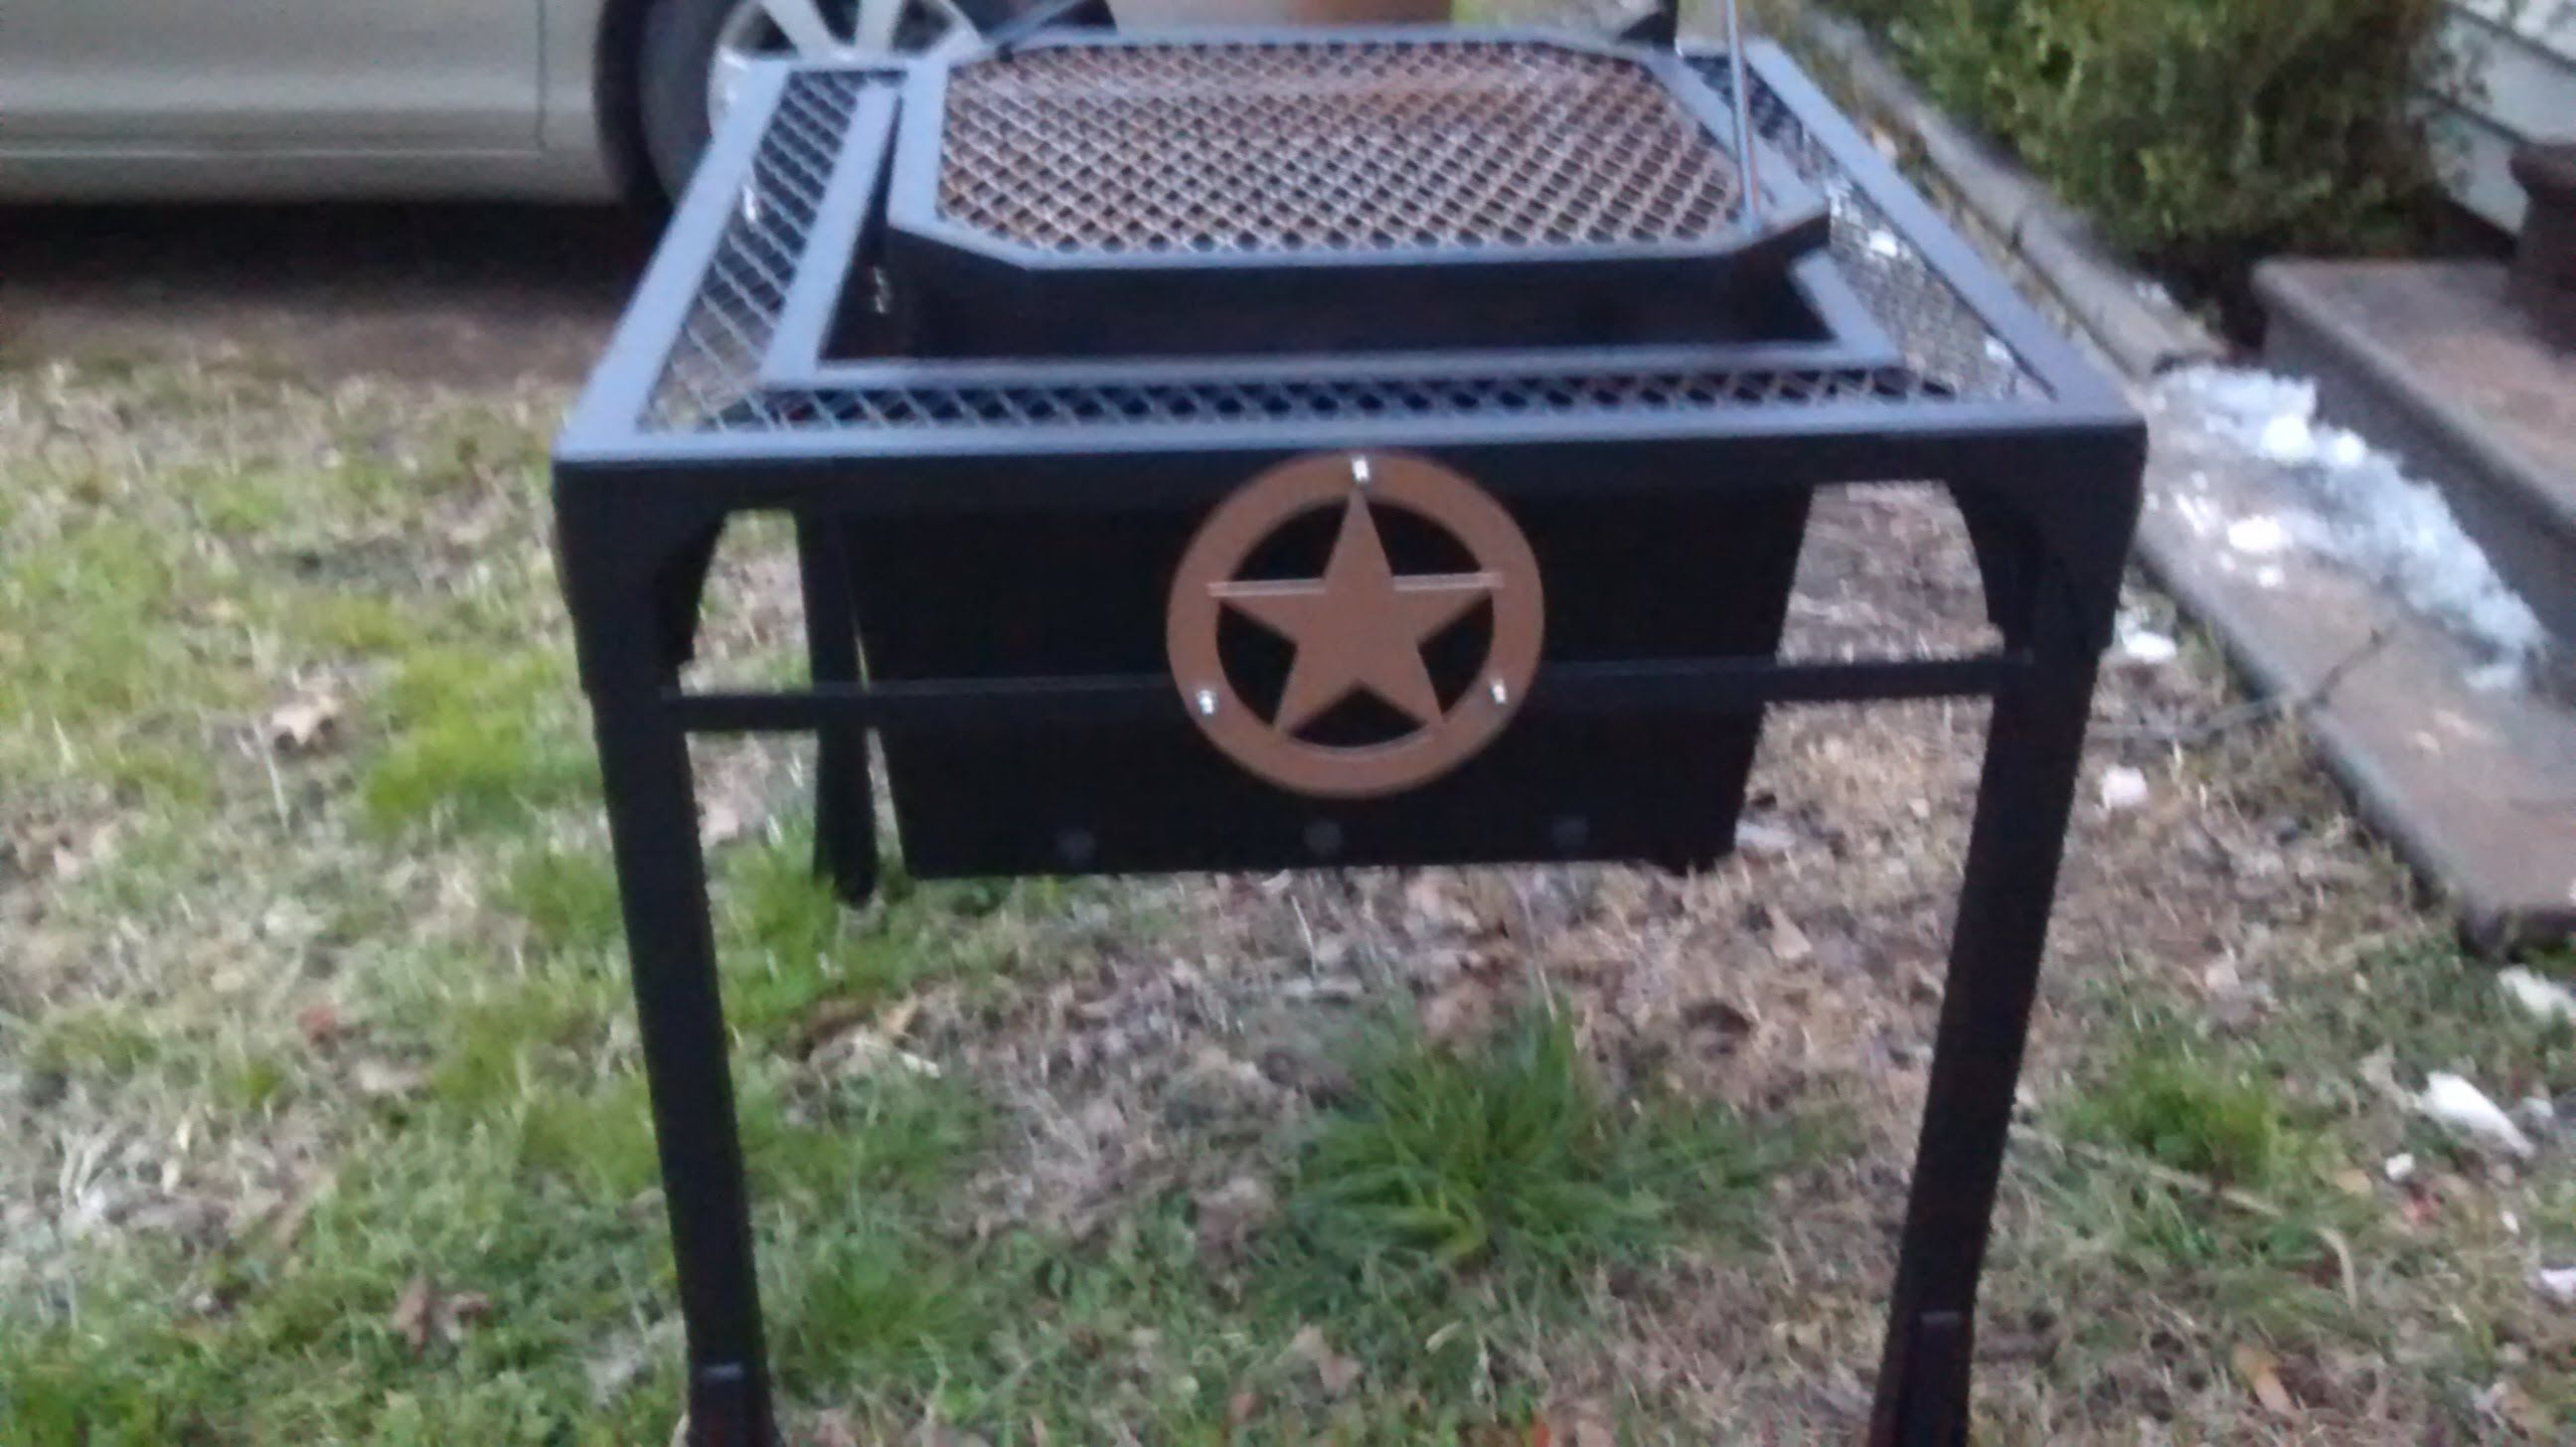 Western fire pit/grill build